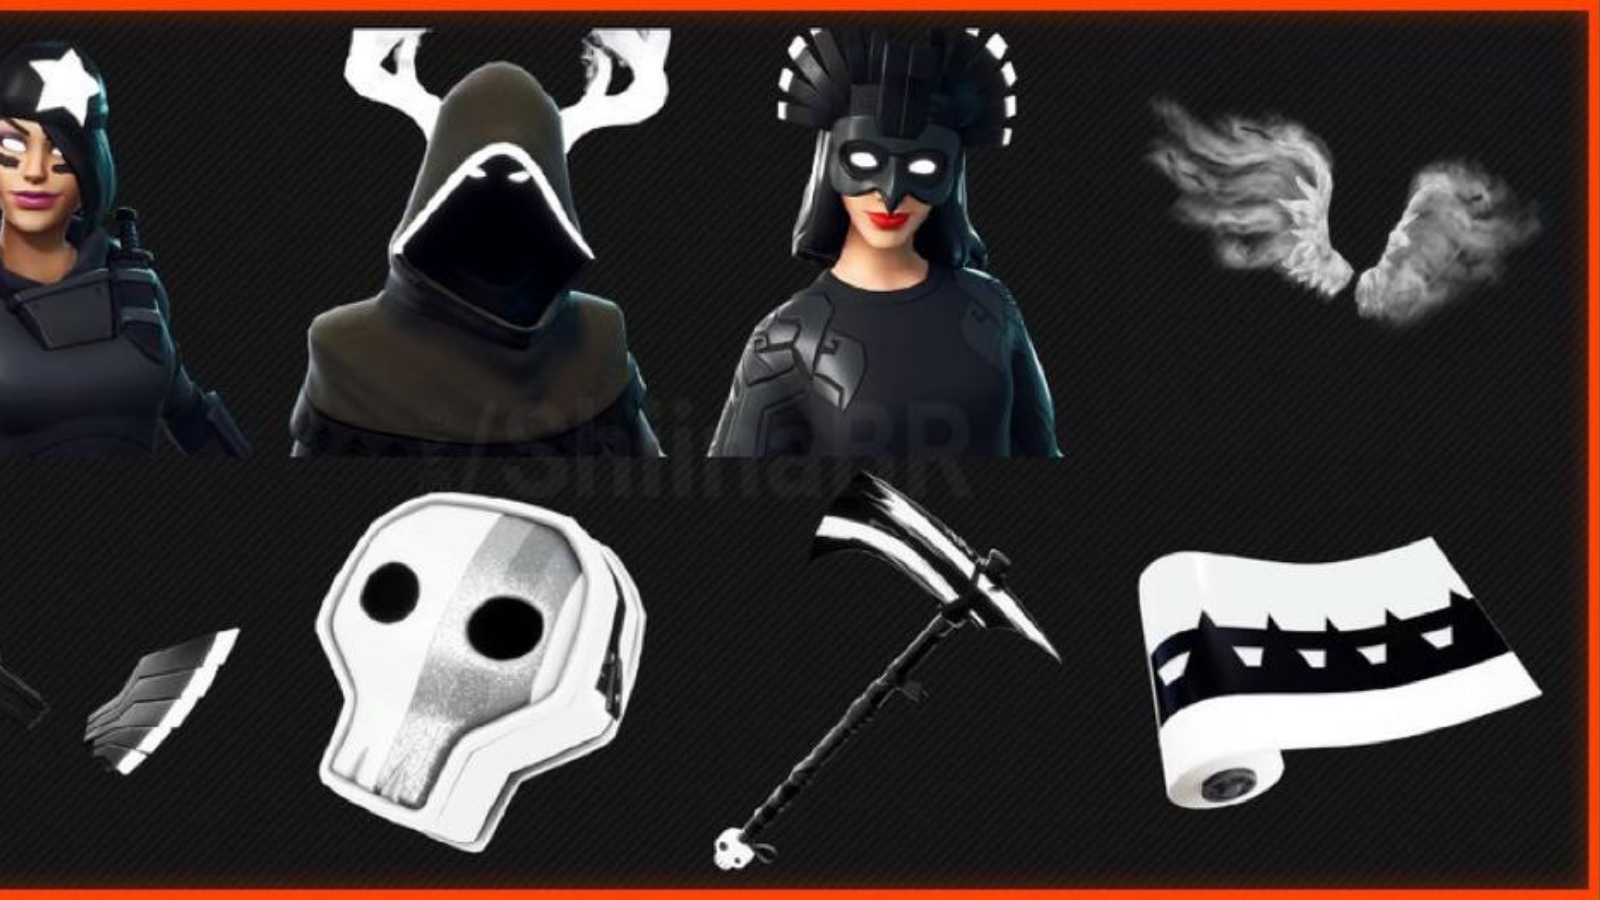 How to Get the Fortnite Shadows Rising Pack Pack in Season 7